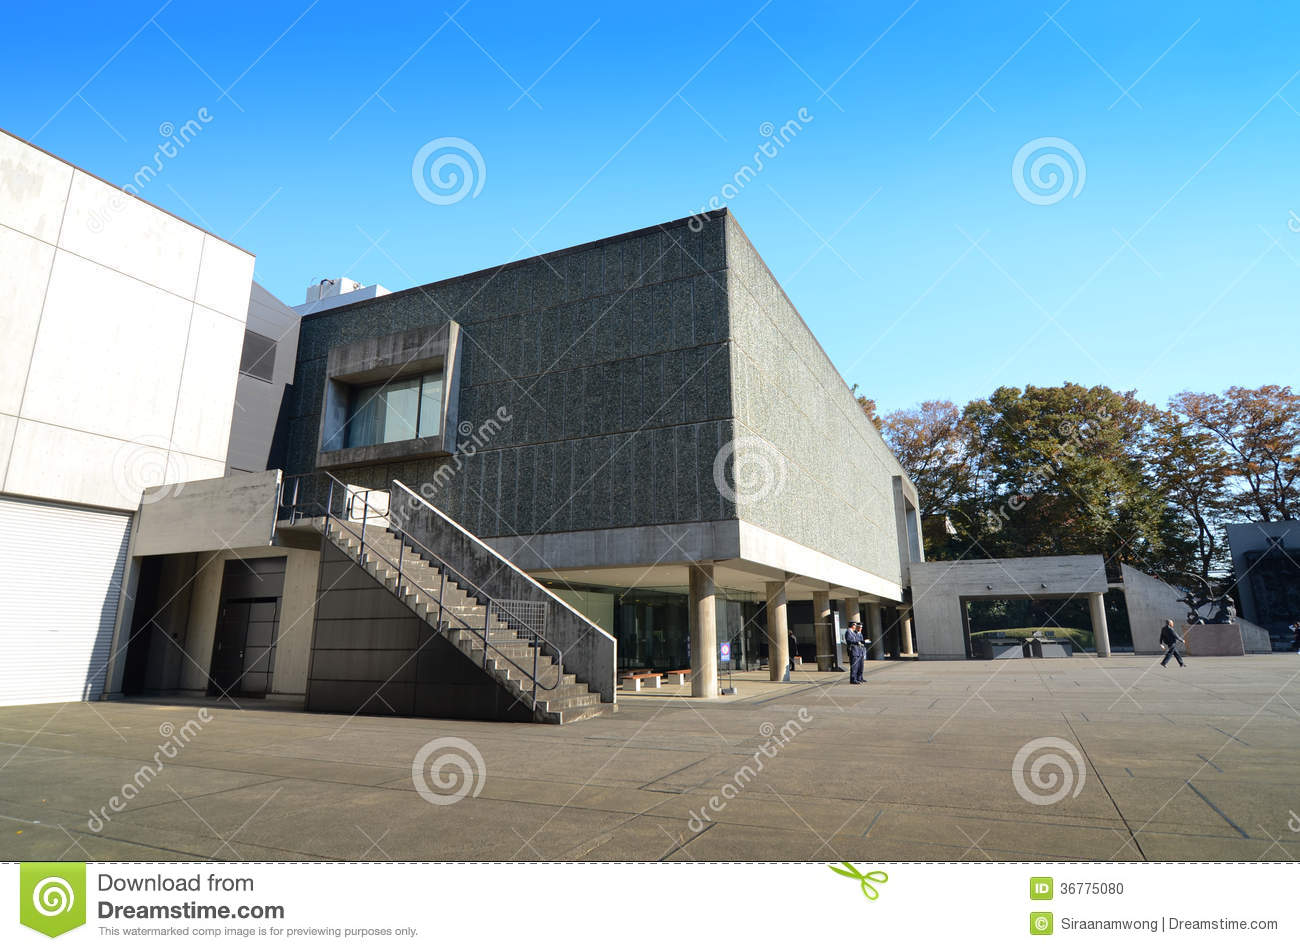 TOKYO, JAPAN - NOVEMBER 22: The National Museum Of Western ...